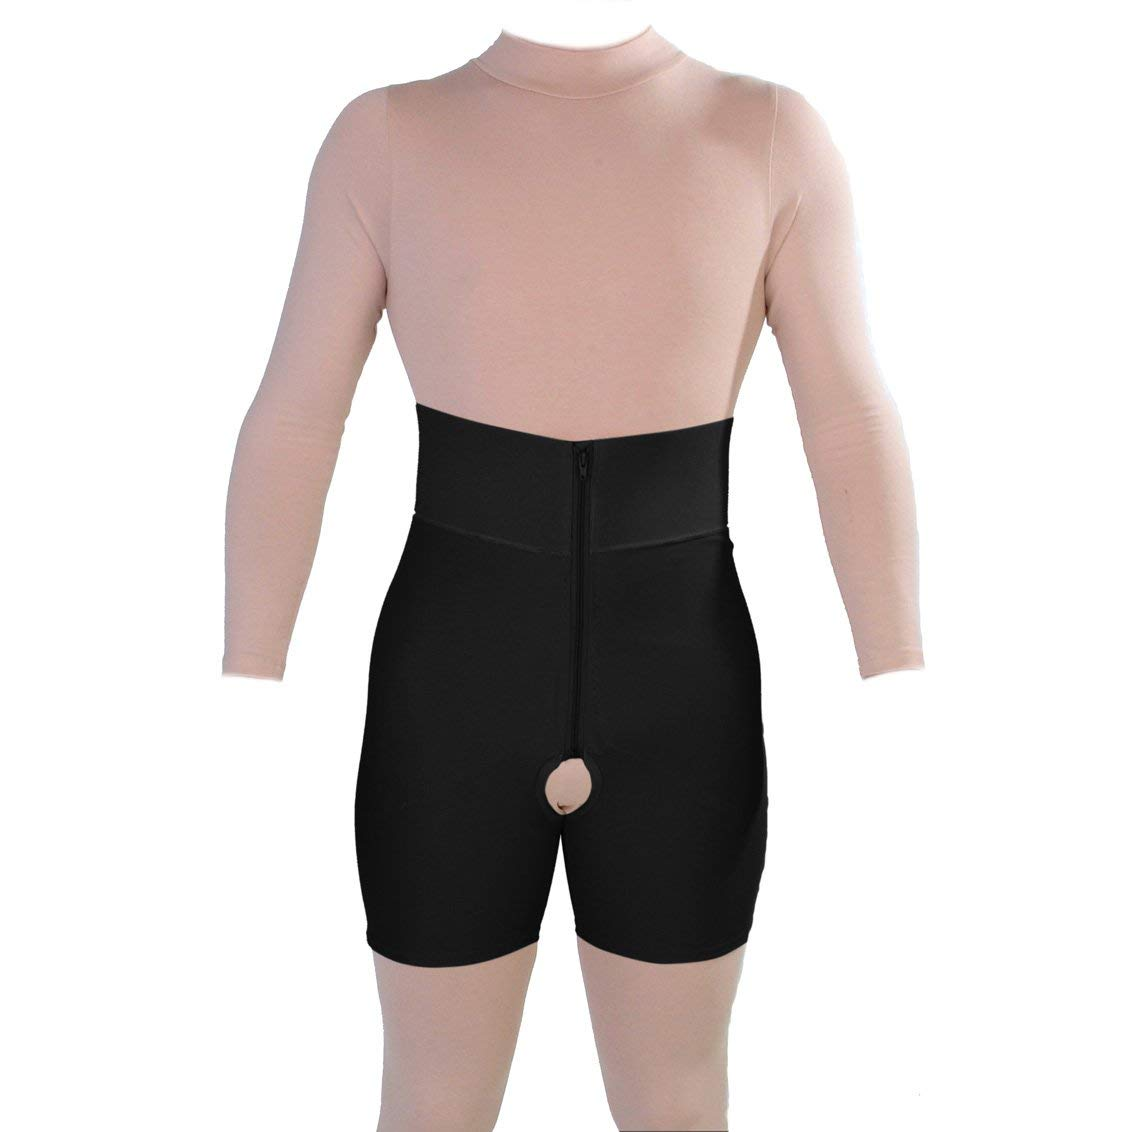 Post Liposuction Abdominal Surgery Recovery Mid Calf Underbust Pull On Body Garment ContourMD Style 39 Small